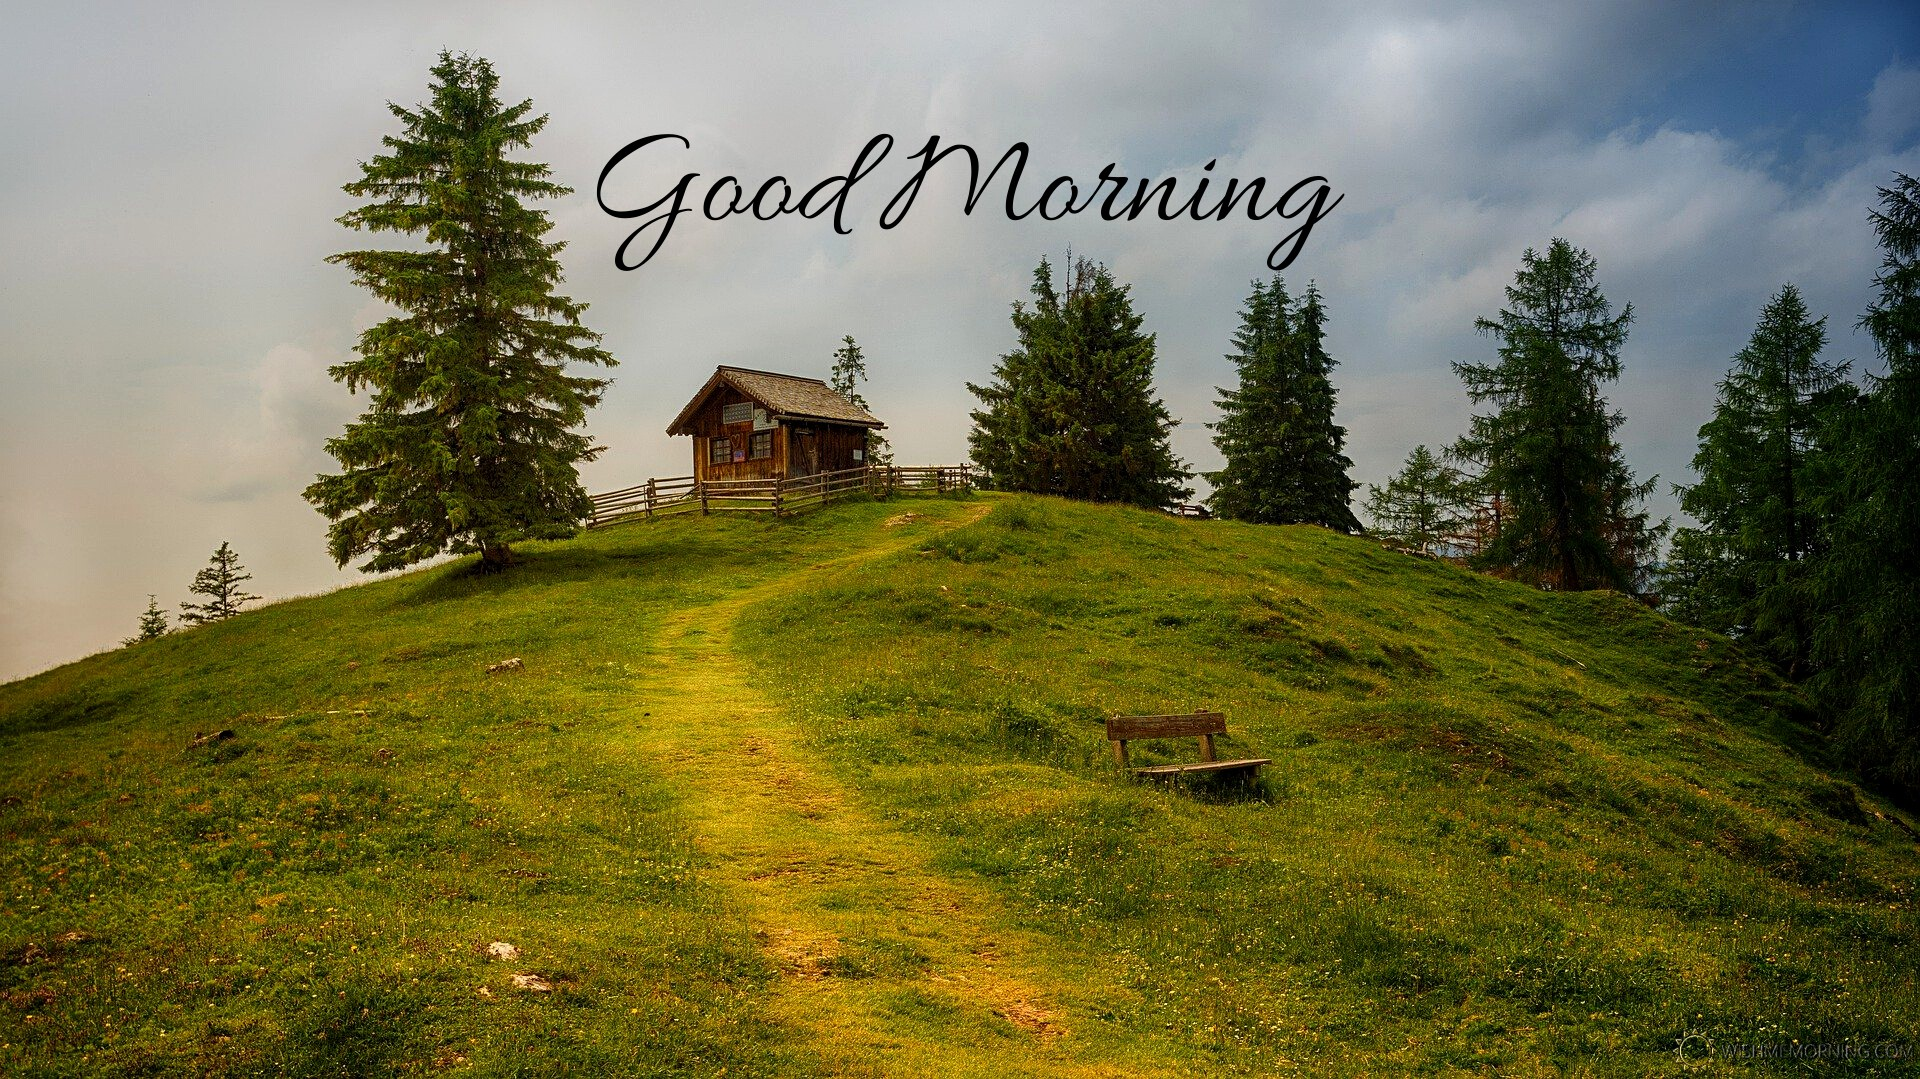 Hut Over Grassy Mountain Field Trees Cloudy Sky Good Morning